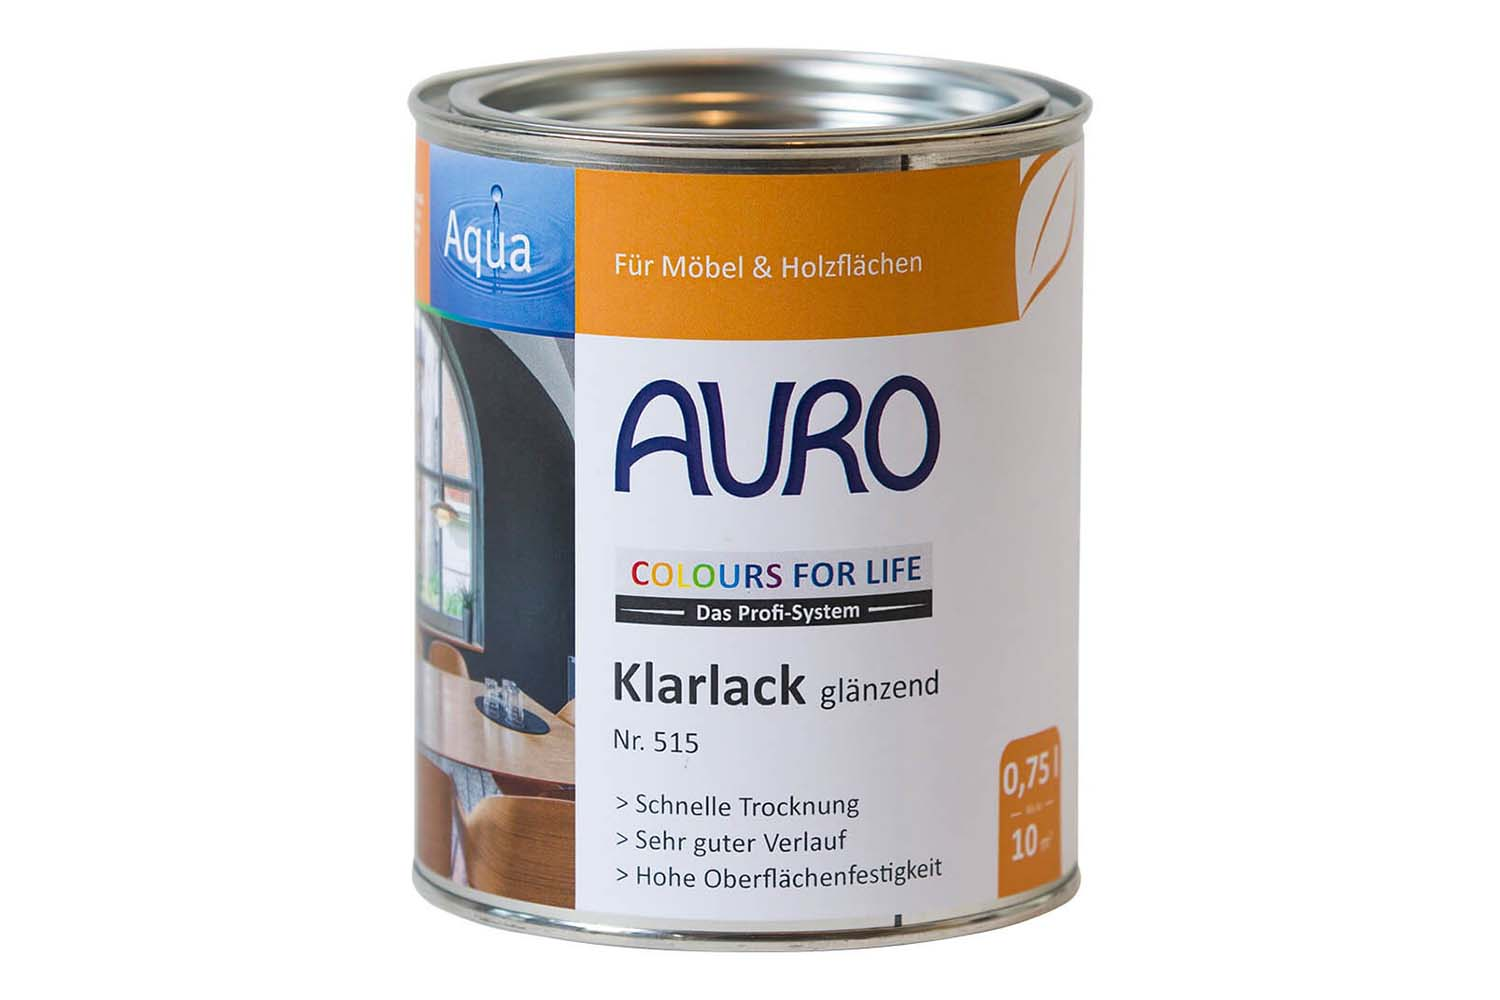 Auro Klarlack glänzend Nr. 515 Colours for Life